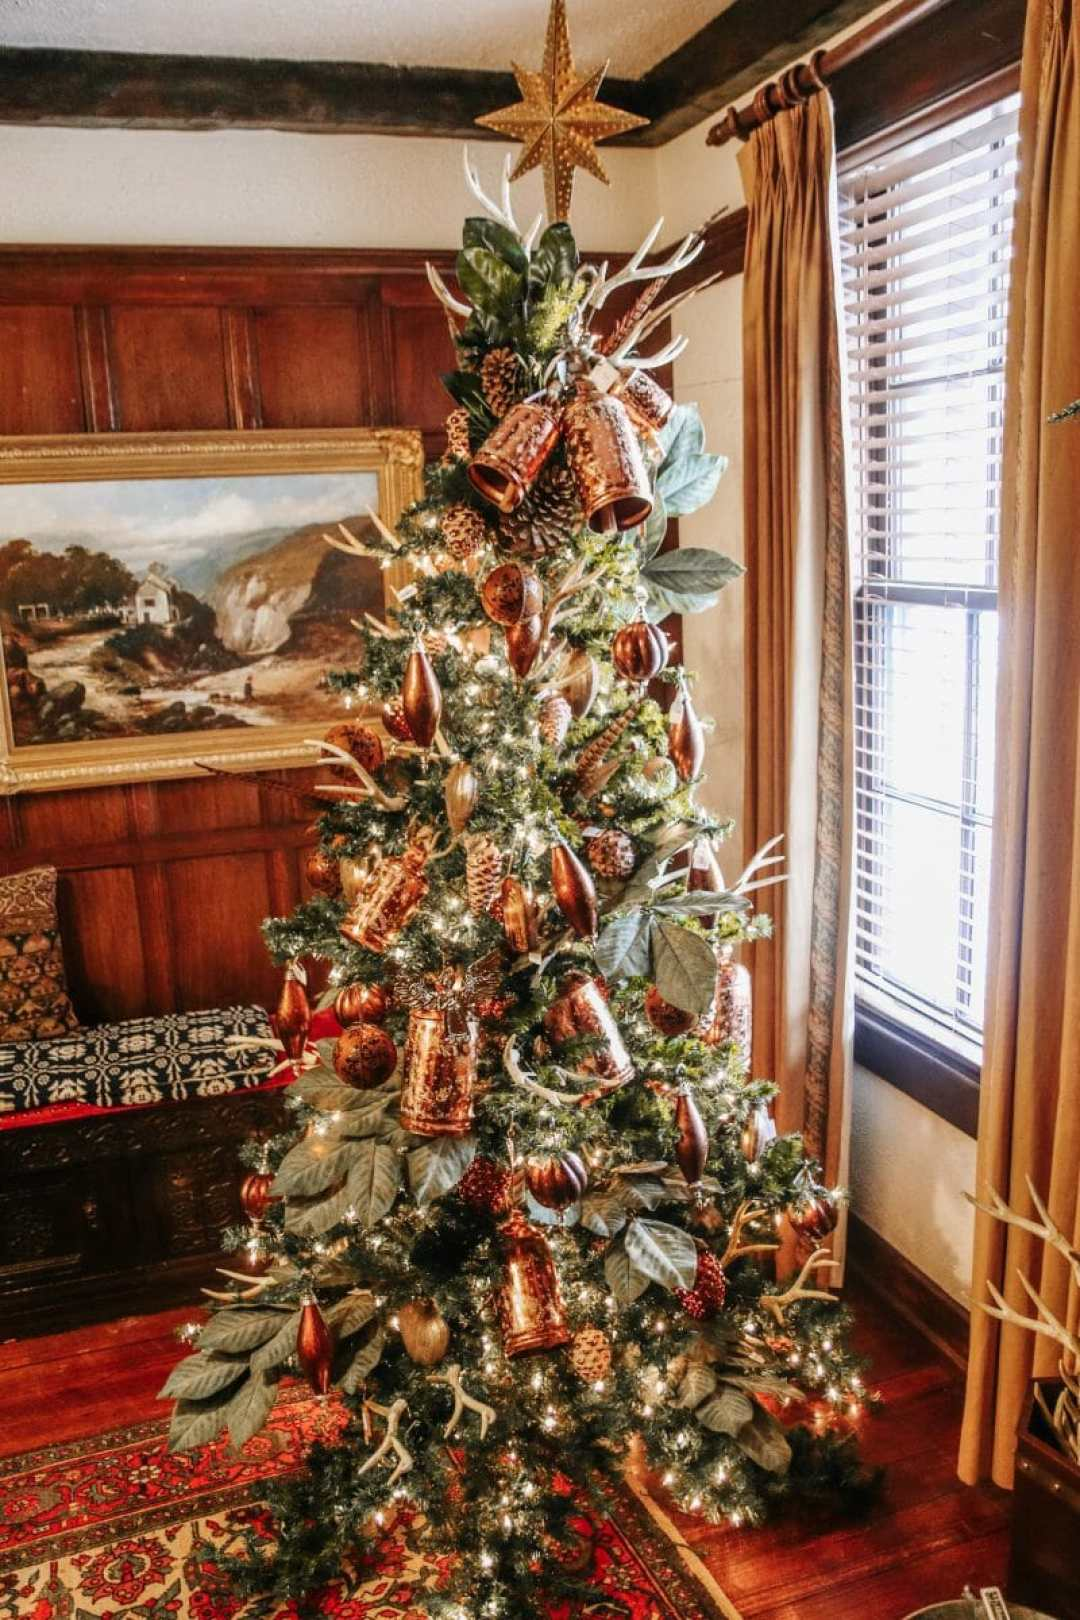 Christmas Time At Wakefield-Scearce Galleries in Shelbyville, KY by JC Phelps of JCP Eats, A Kentucky-Based Food and Lifestyle Blog